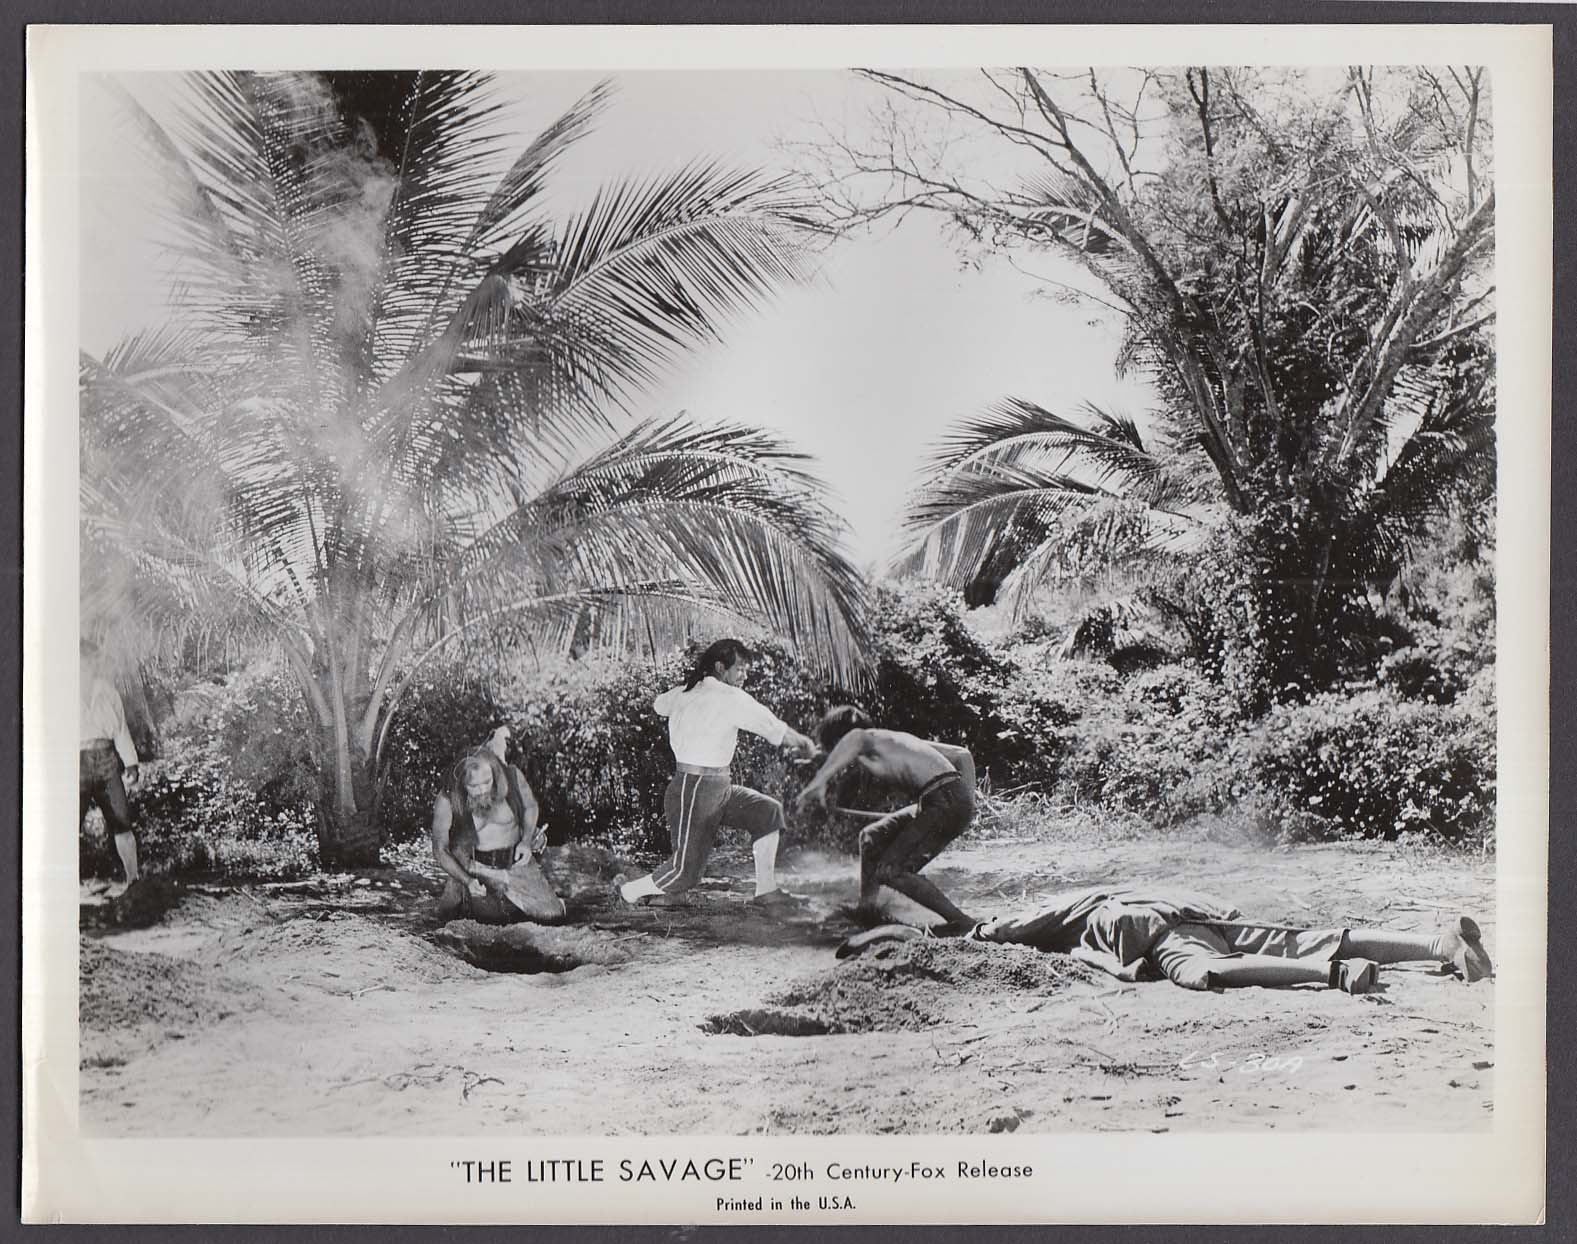 Swordfight scene in The Little Savage 8x10 photo 1959